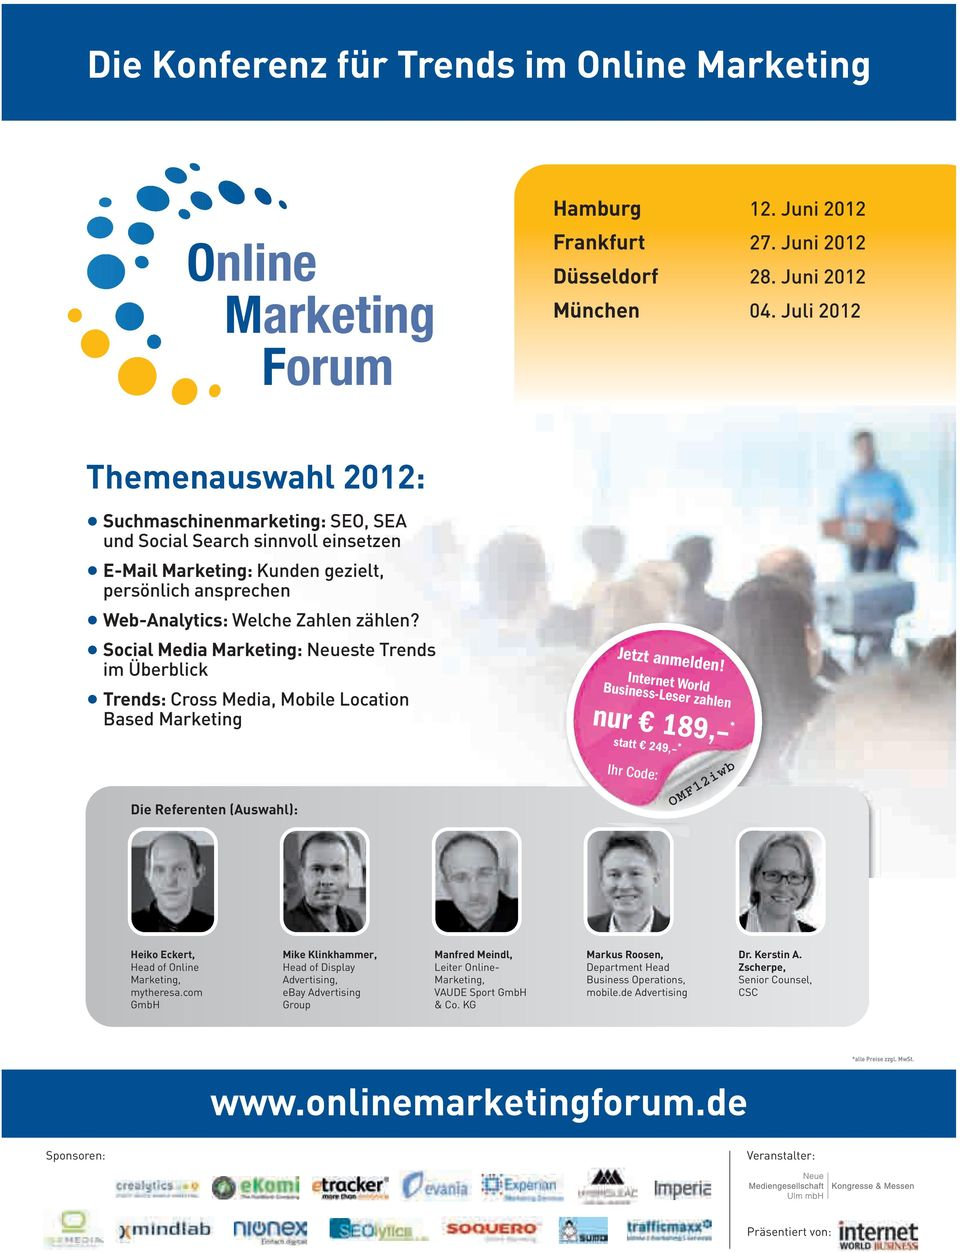 Social Media Marketing: Neueste Trends im Überblick Trends: Cross Media, Mobile Location Based Marketing Die Referenten (Auswahl): Jetzt anmelden!